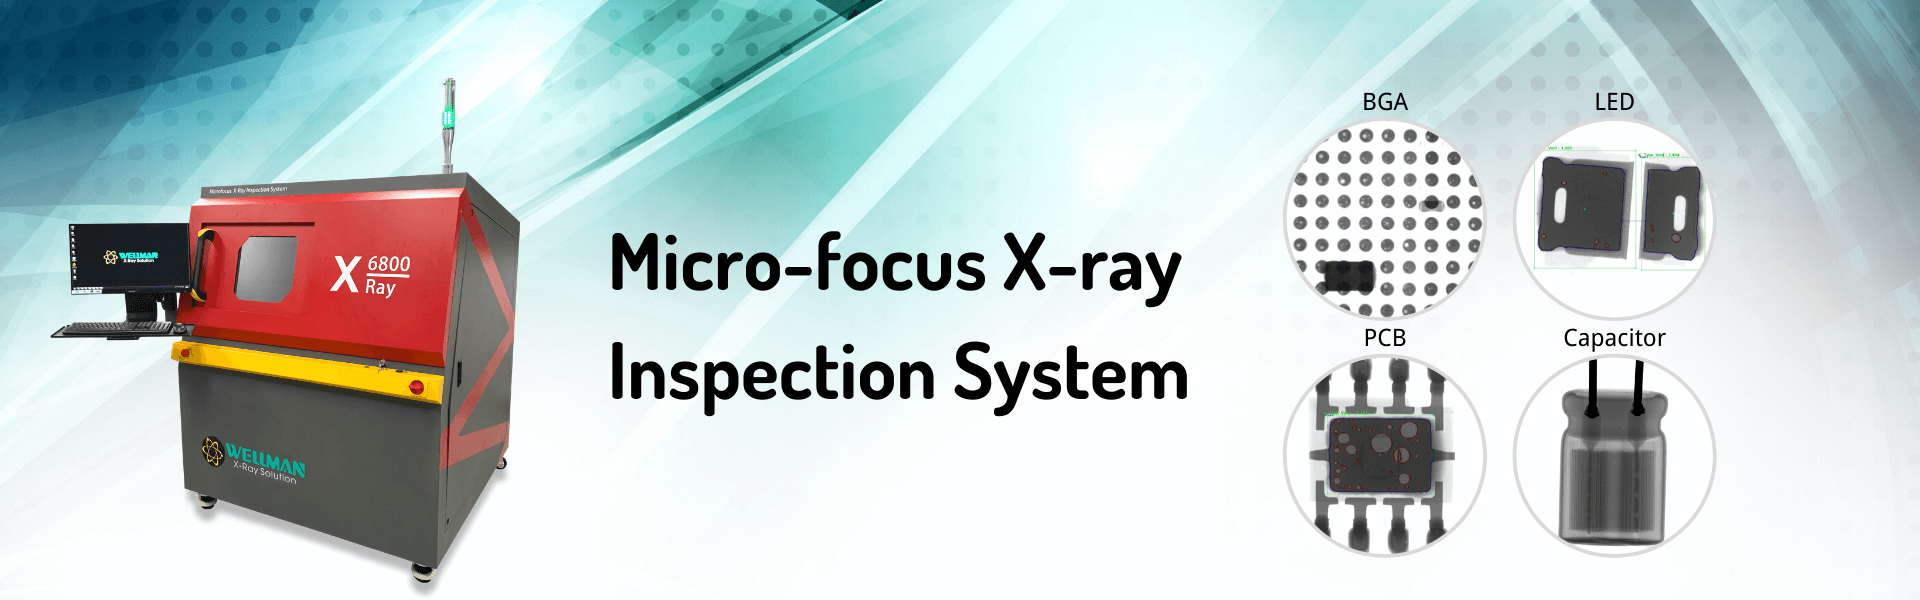 Microfocus X-ray inspection system